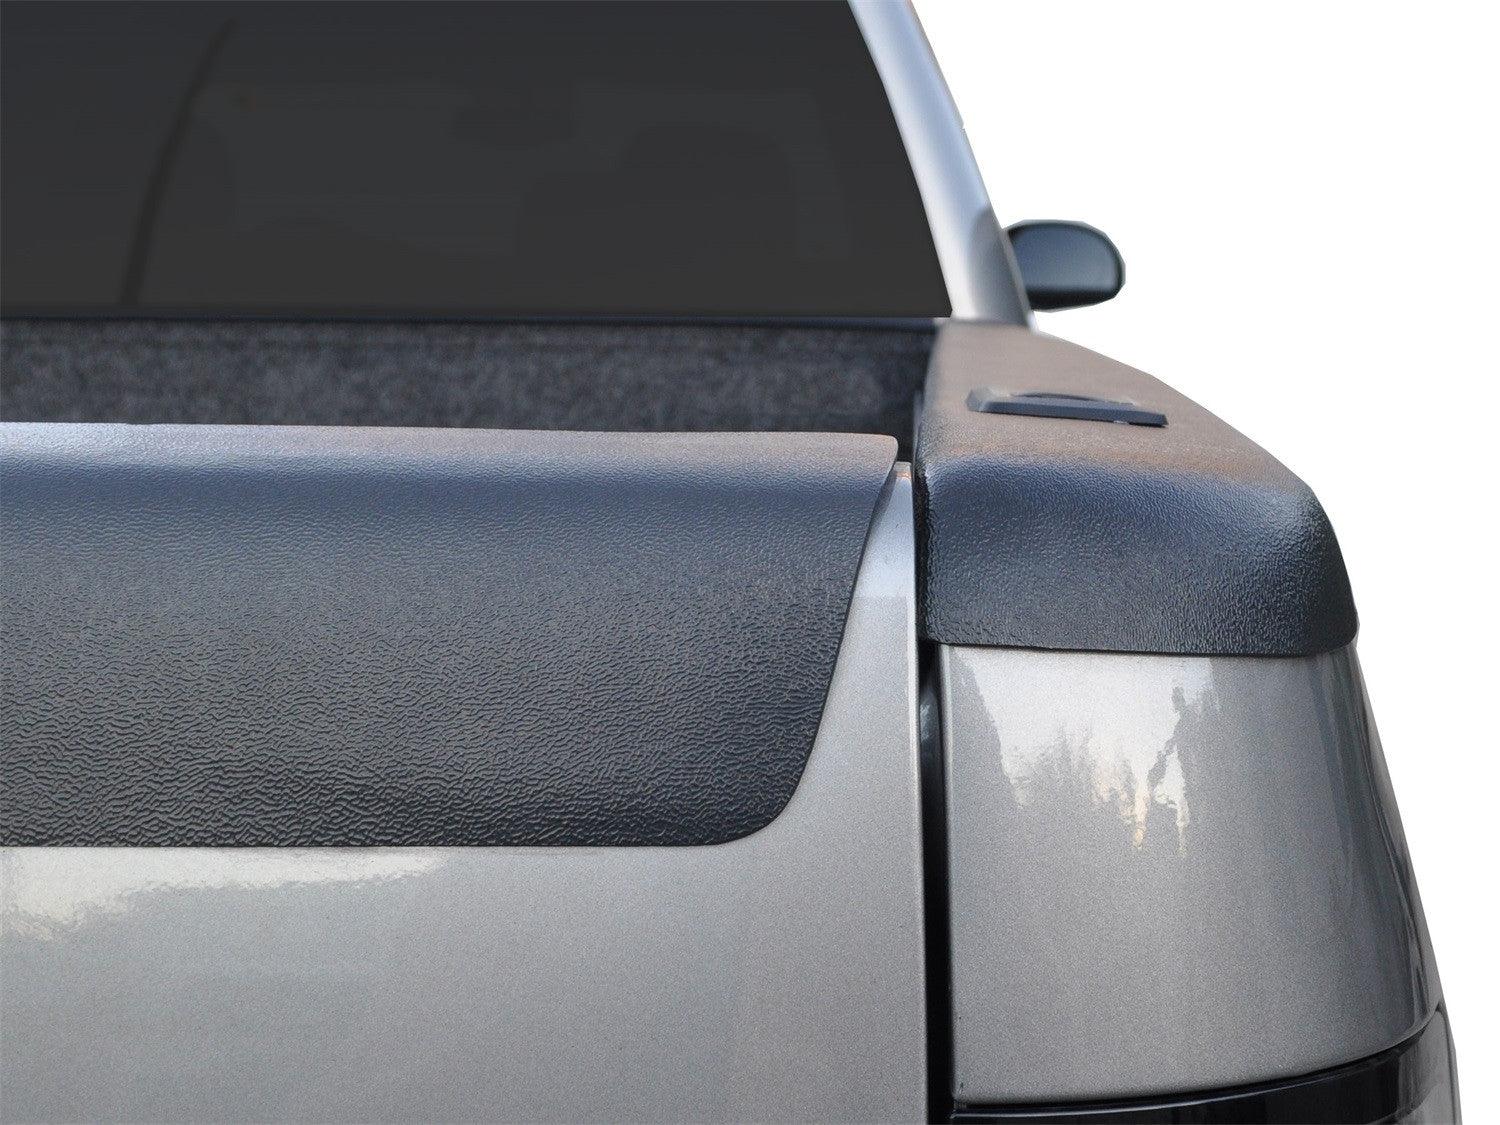 Truck Bed Side Rail Protector-LT Husky 97101